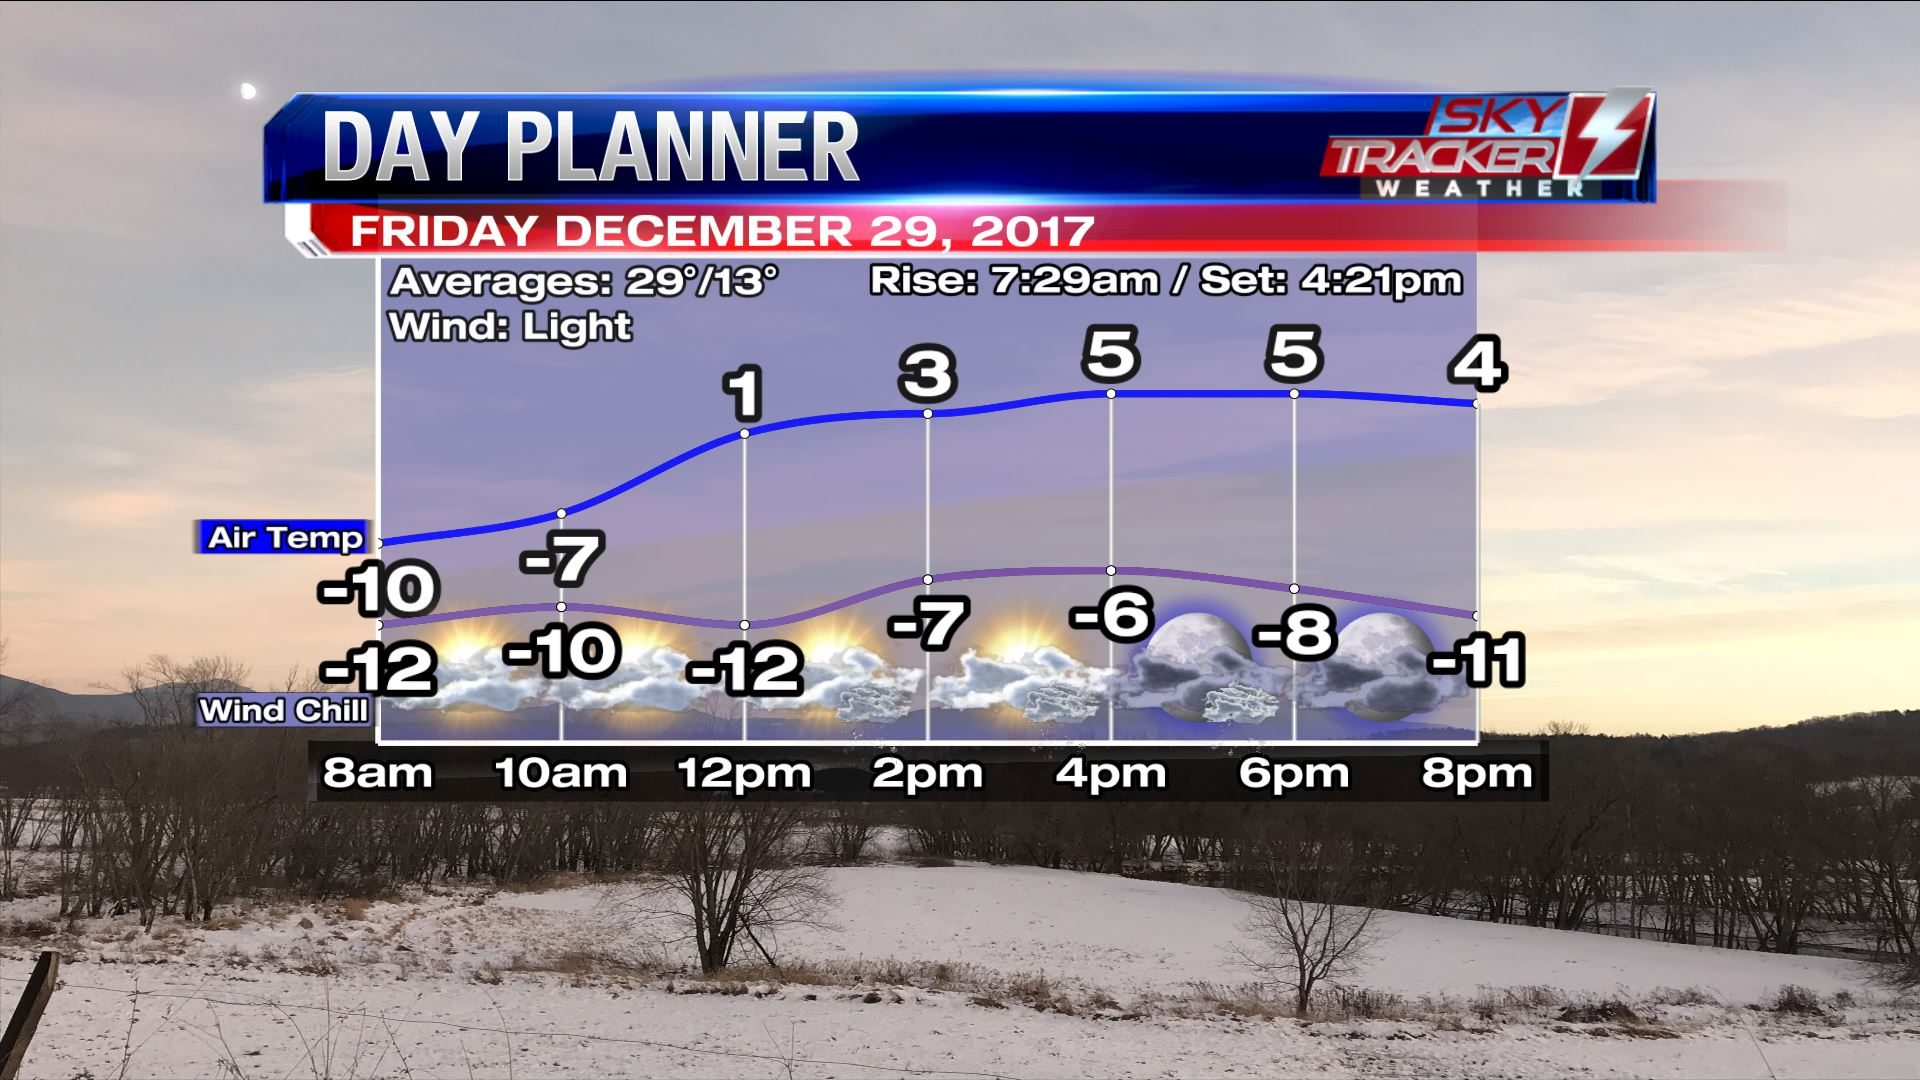 Planner for Friday December 29 2017